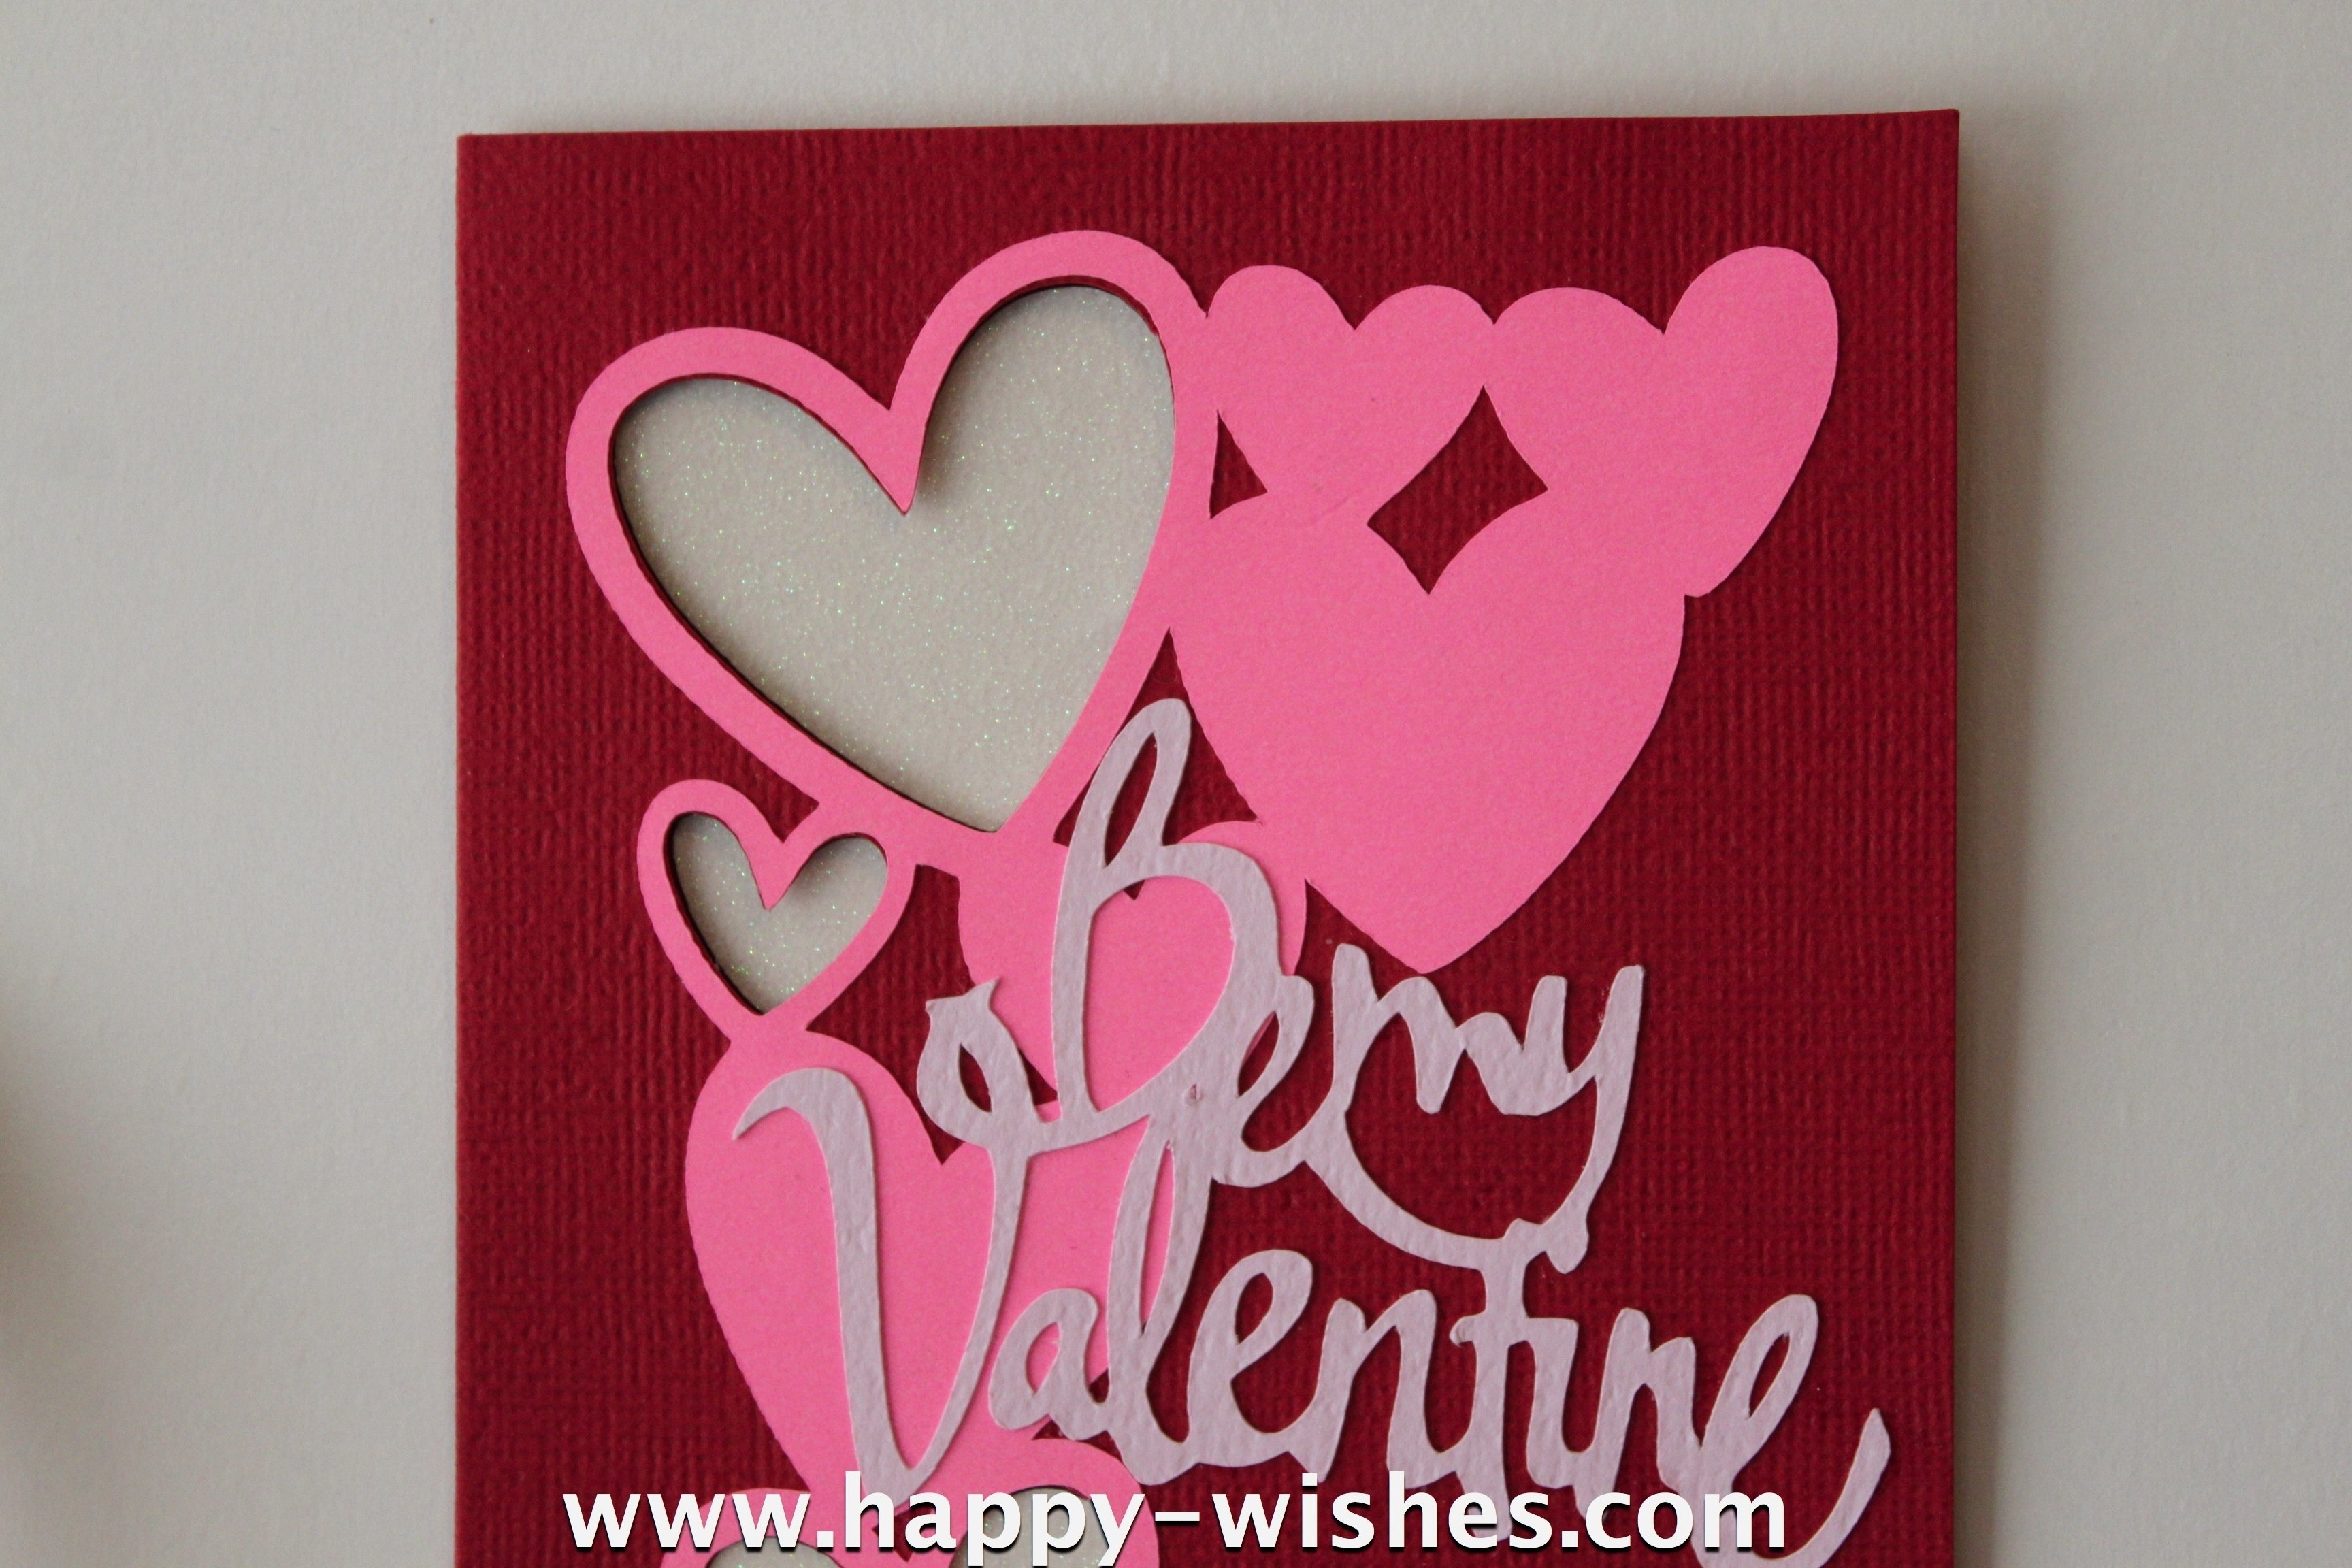 10 Best Homemade Valentines Day Card Ideas